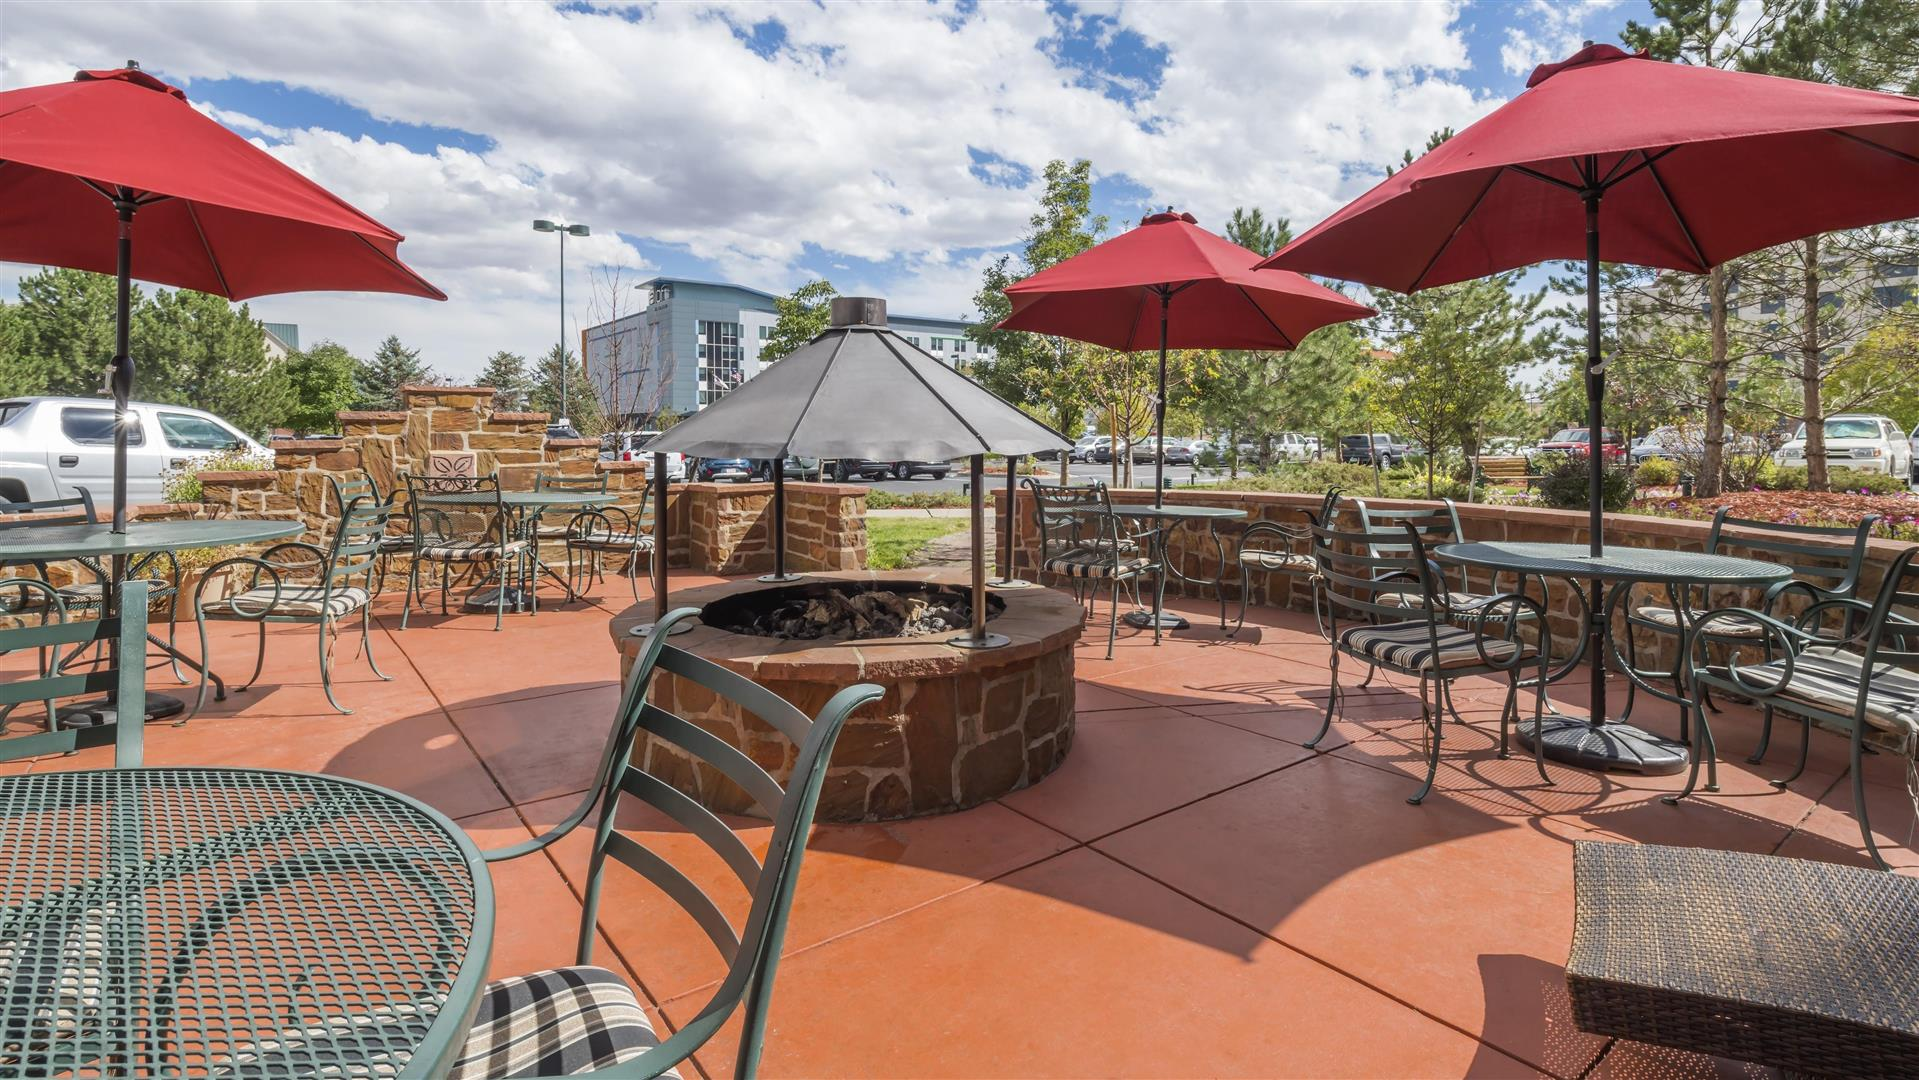 Meetings And Events At Hilton Garden Inn Denver Airport, Aurora, CO, US Nice Ideas